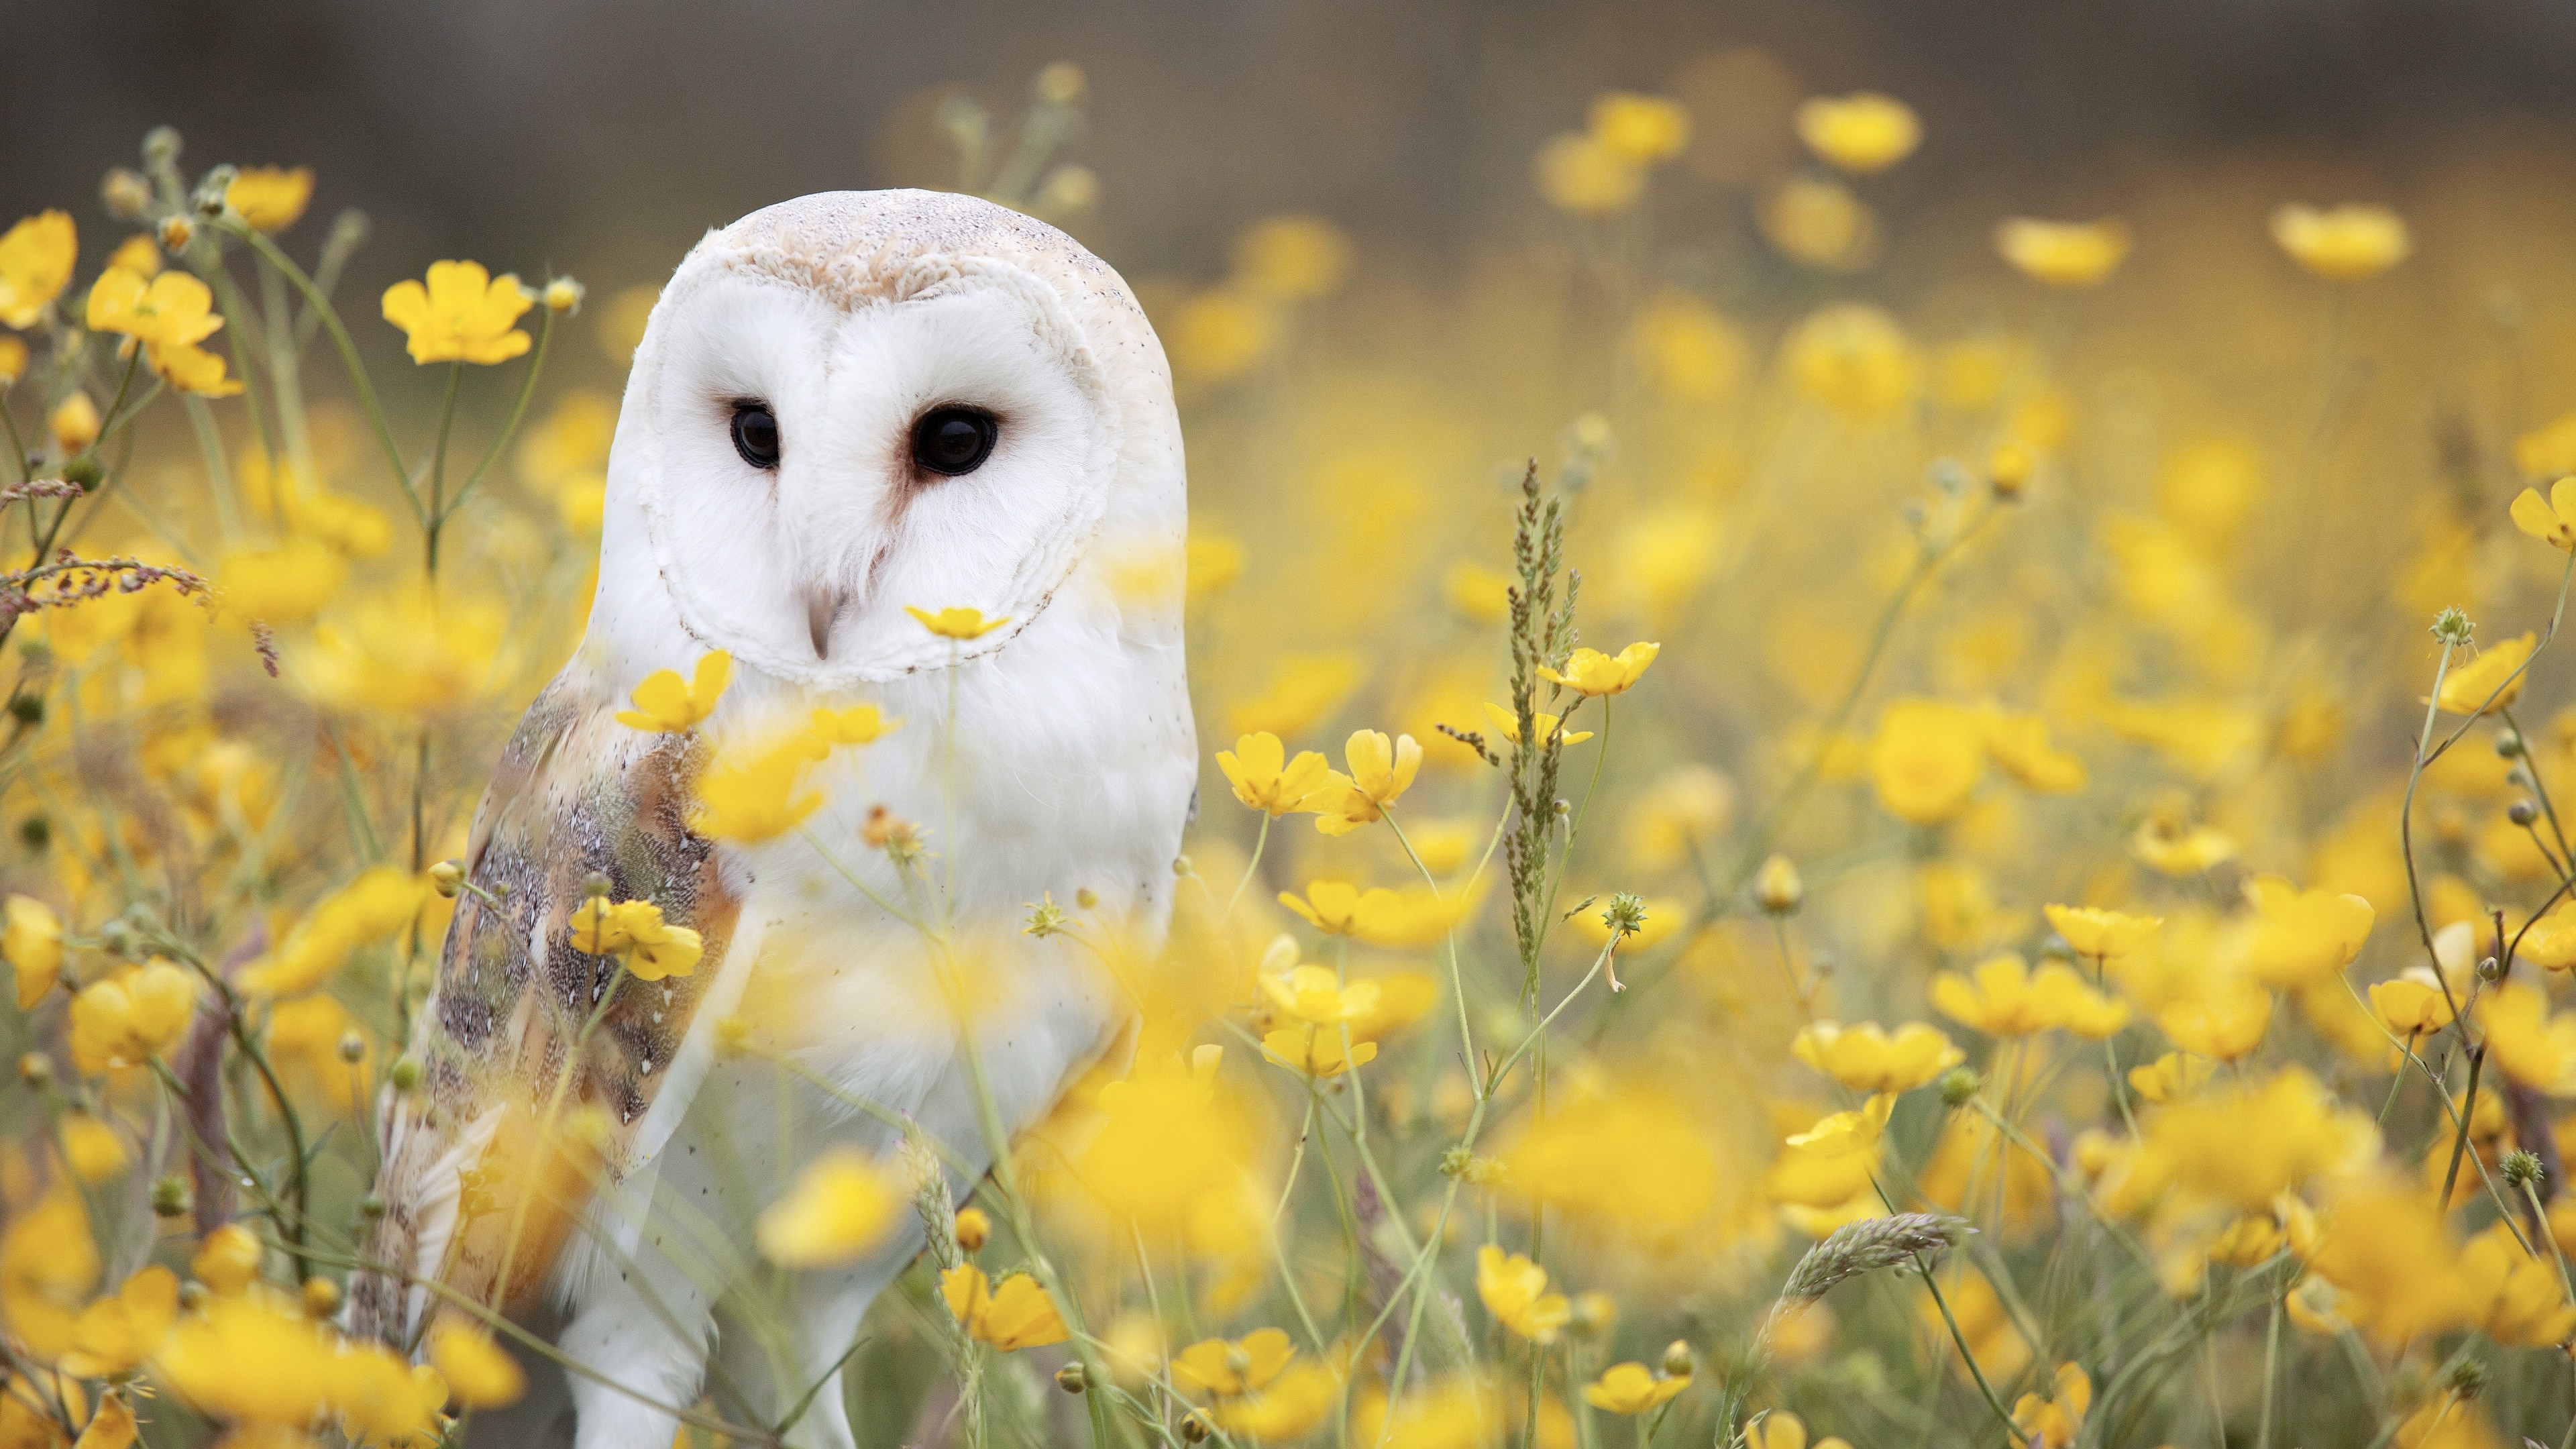 Owl Wallpaper 1 Download Free Cool High Resolution Backgrounds For